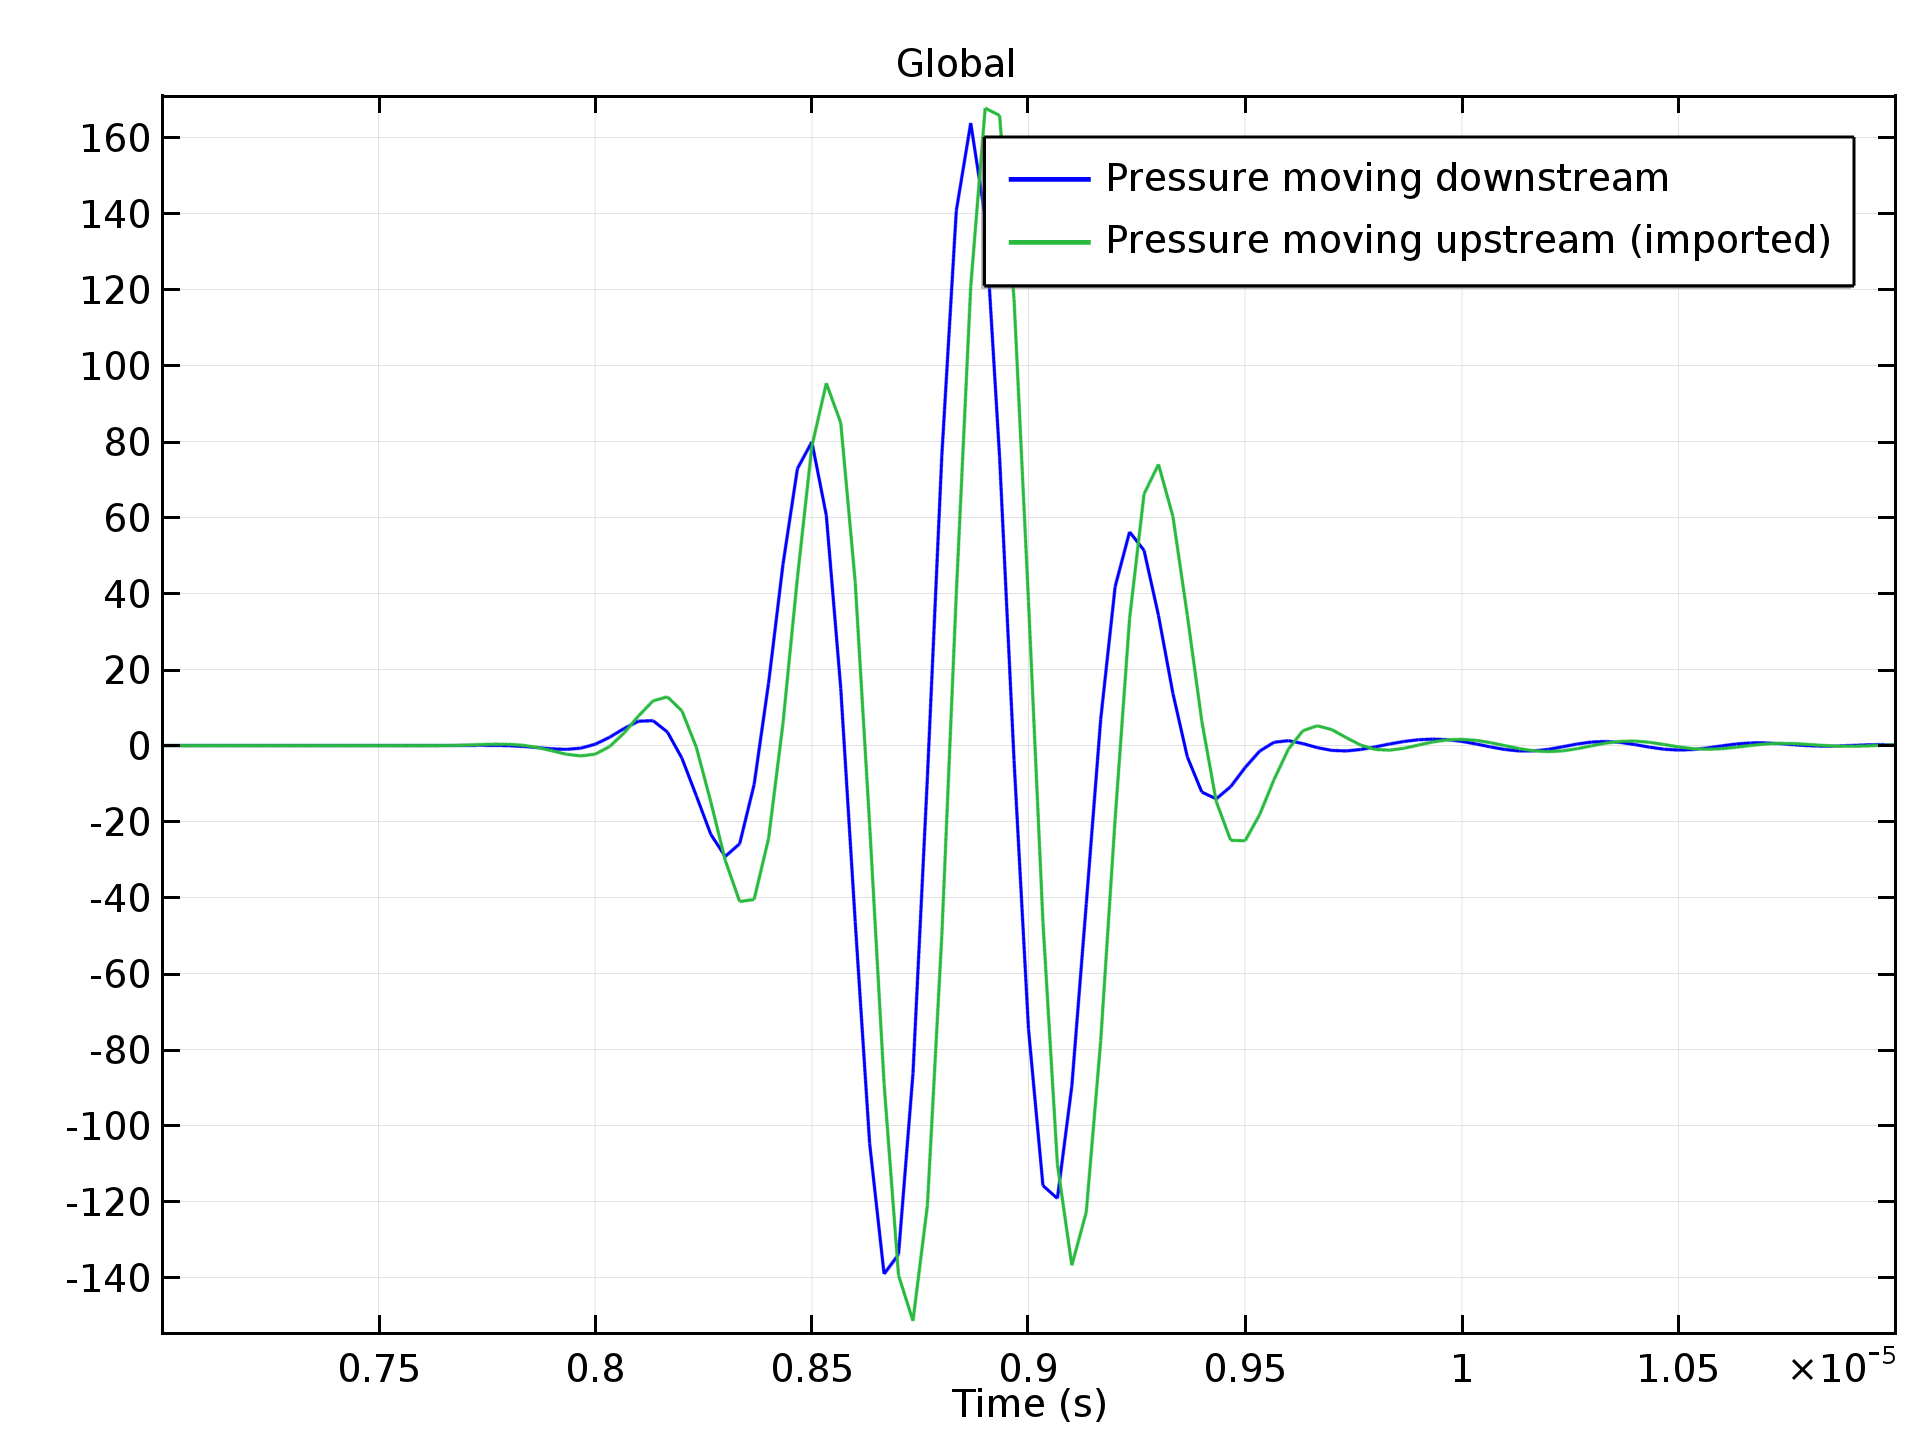 The average pressure at the receiver for a pulse moving downstream and a pulse moving upstream. The time difference is used to calculate the average flow speed in the main channel.